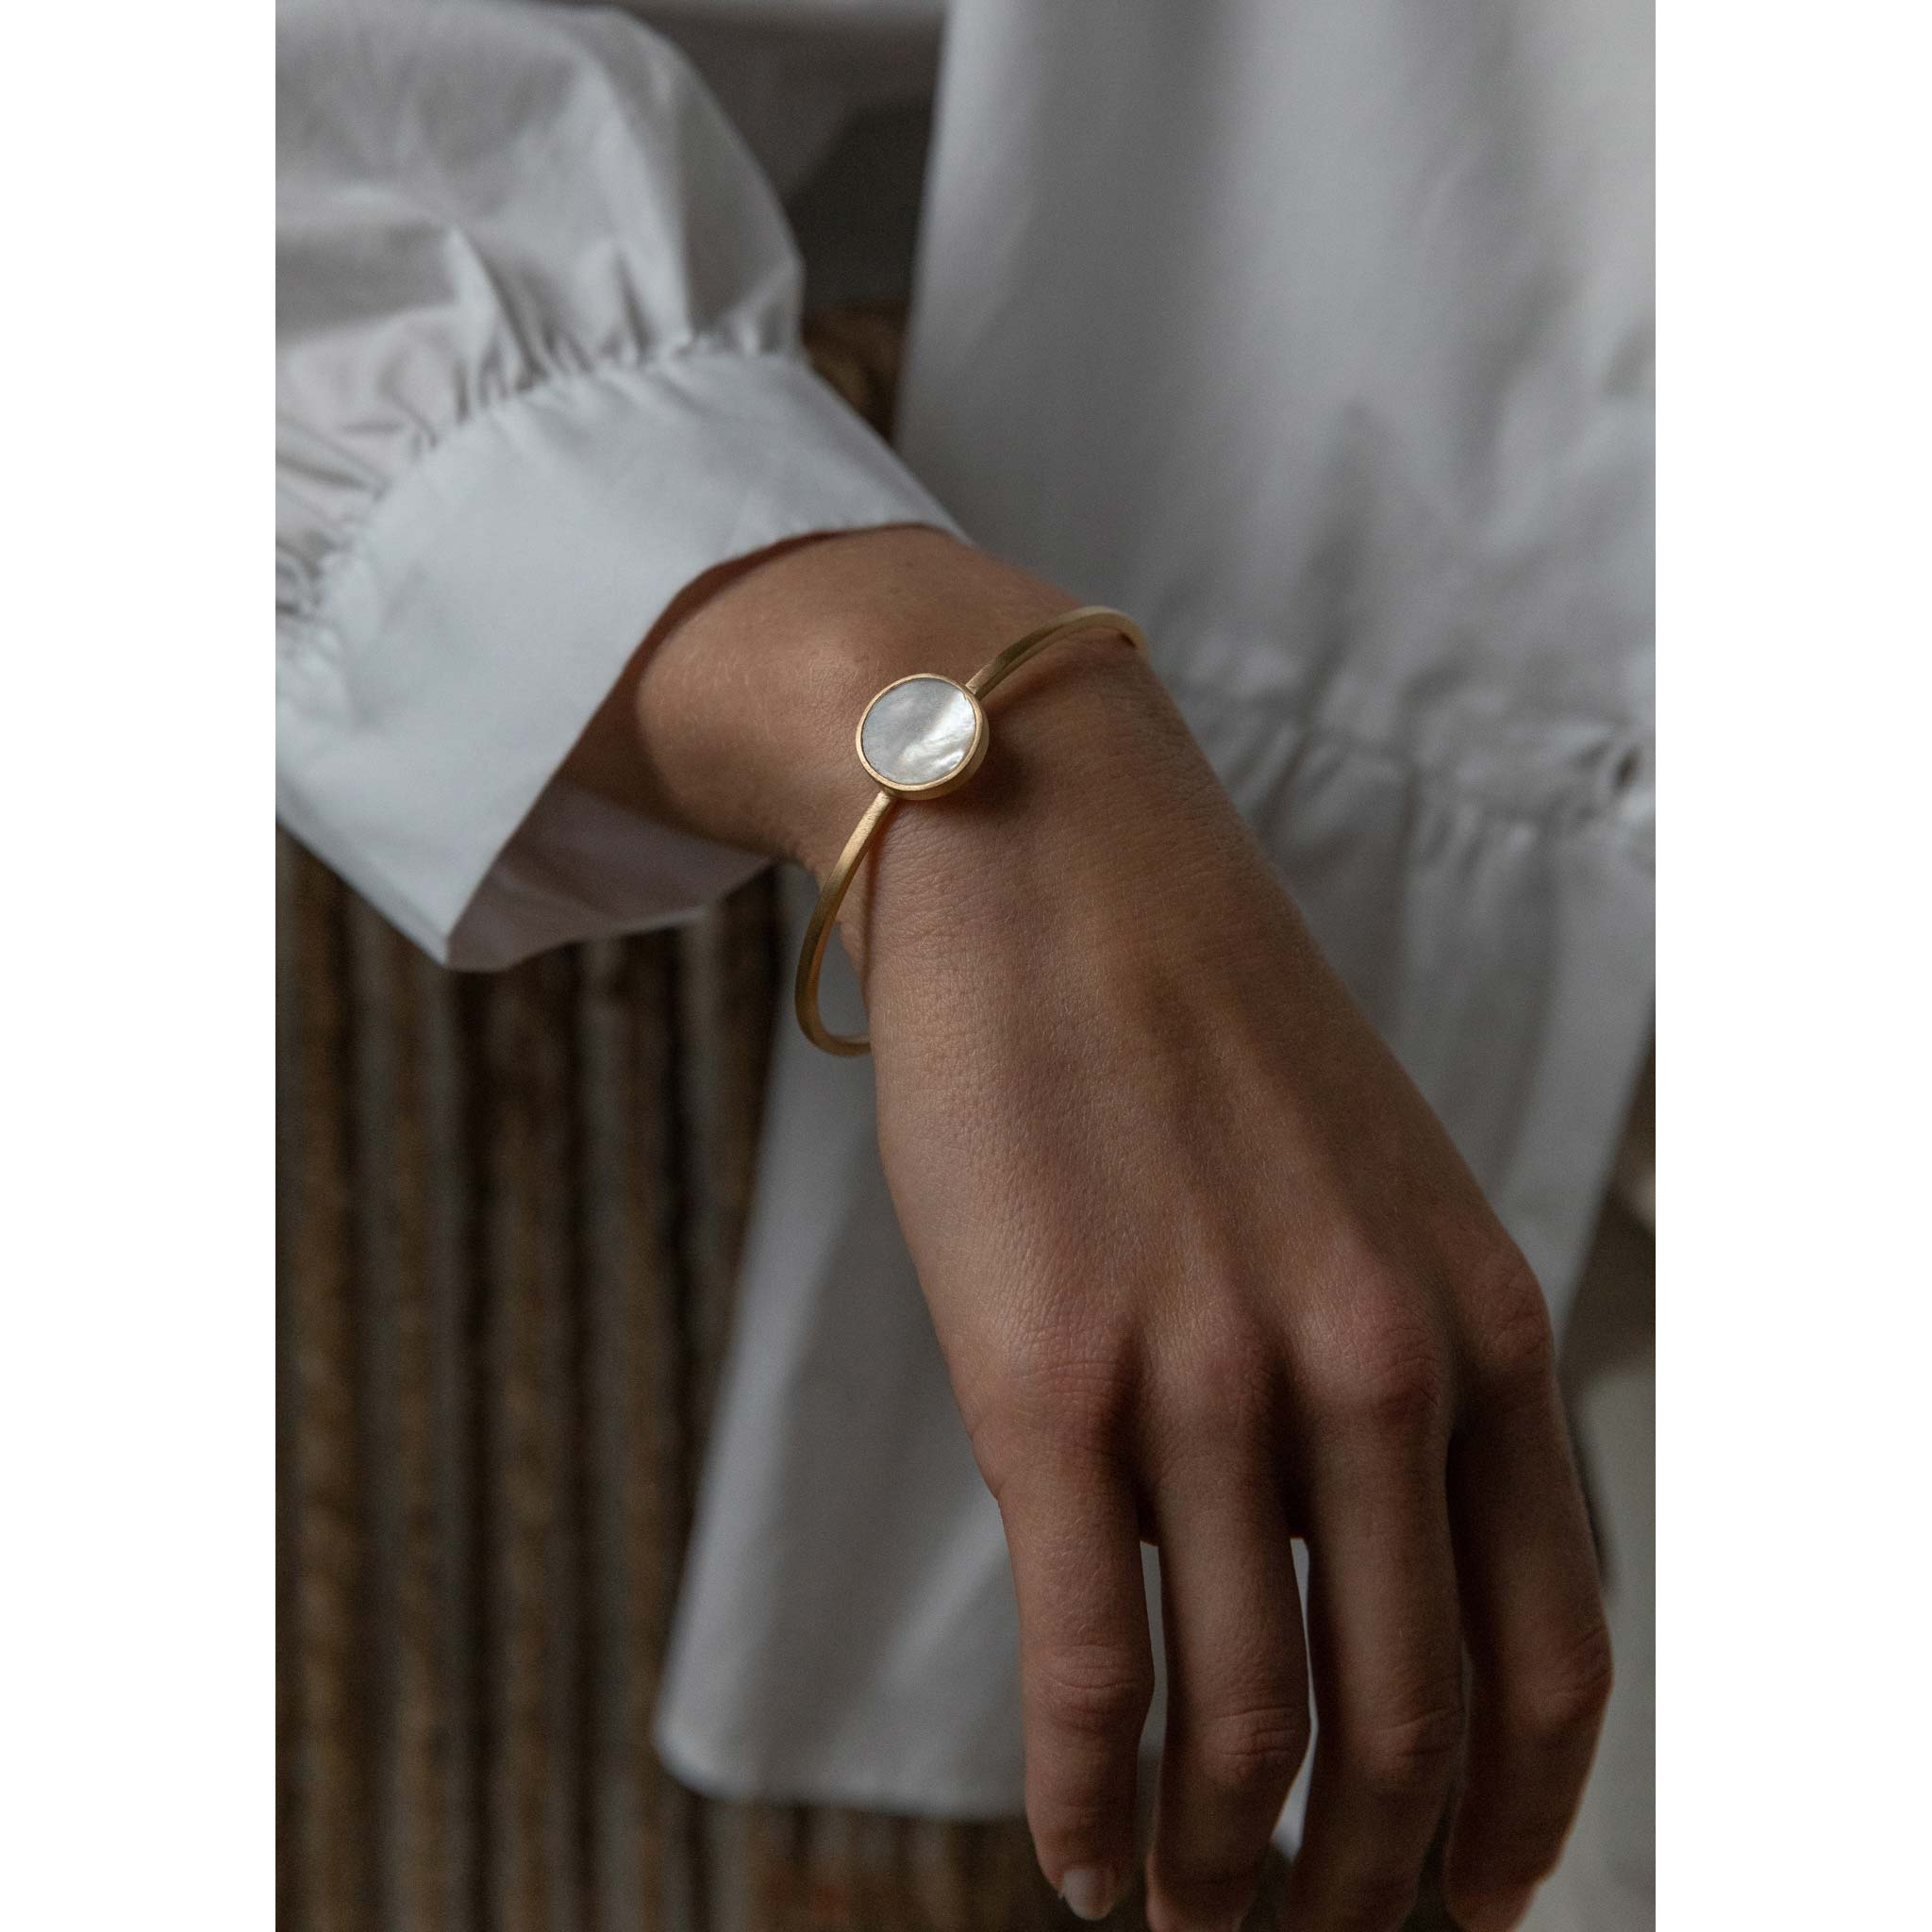 Wanderlust Life mother of pearl bracelet. Gold cuff available in one size. Handmade bracelet in the UK.